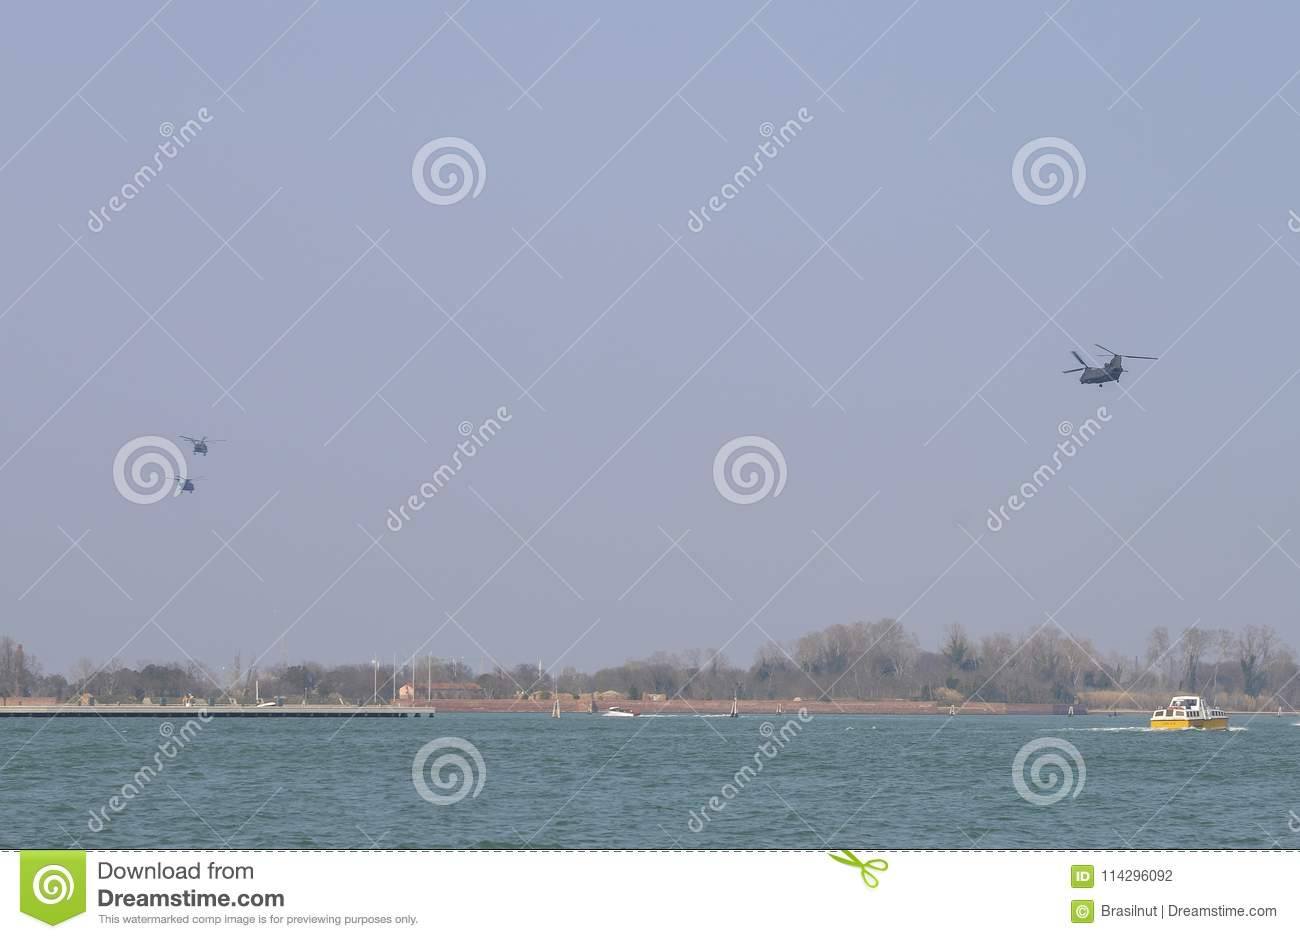 Military Helicopters in formation over the Venetian lagoon heading towards Aviano Air Base in Northeastern Italy.